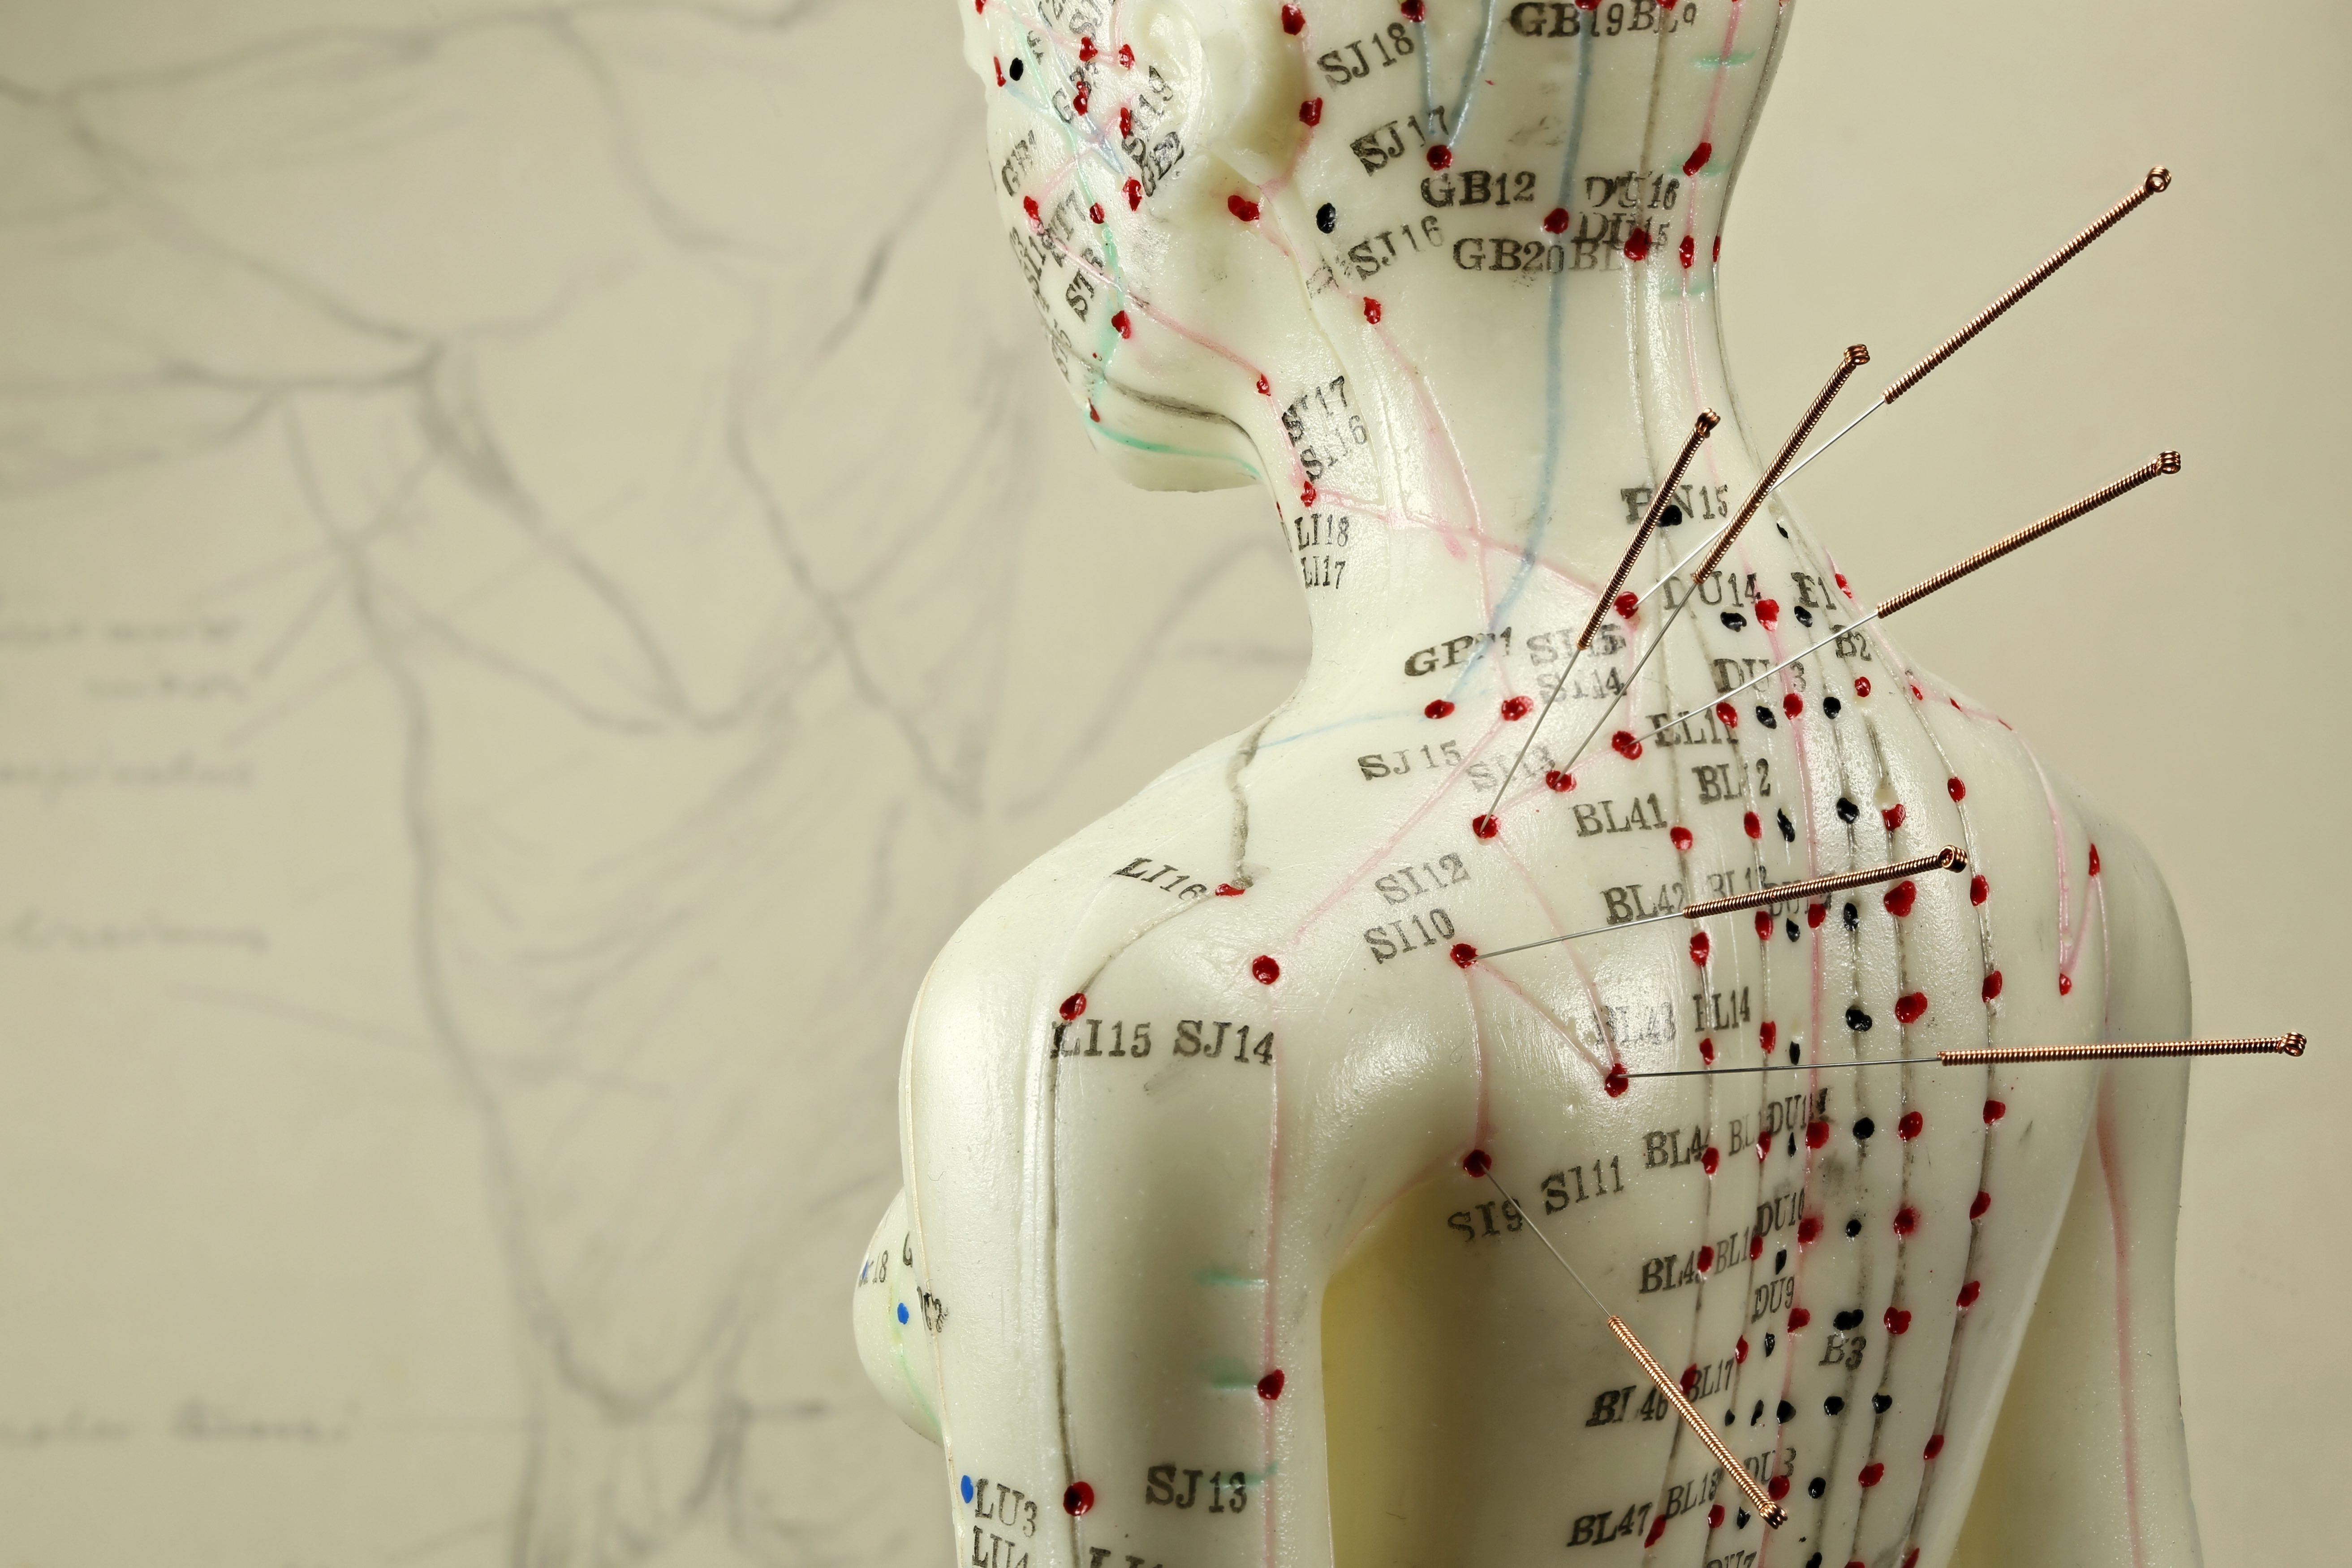 Just as traditional Chinese medicine emphasizes the underlying energetic systems in the body, it also attunes to the energetic nature of the seasons. (Bjoern Wylezich/Shutterstock)